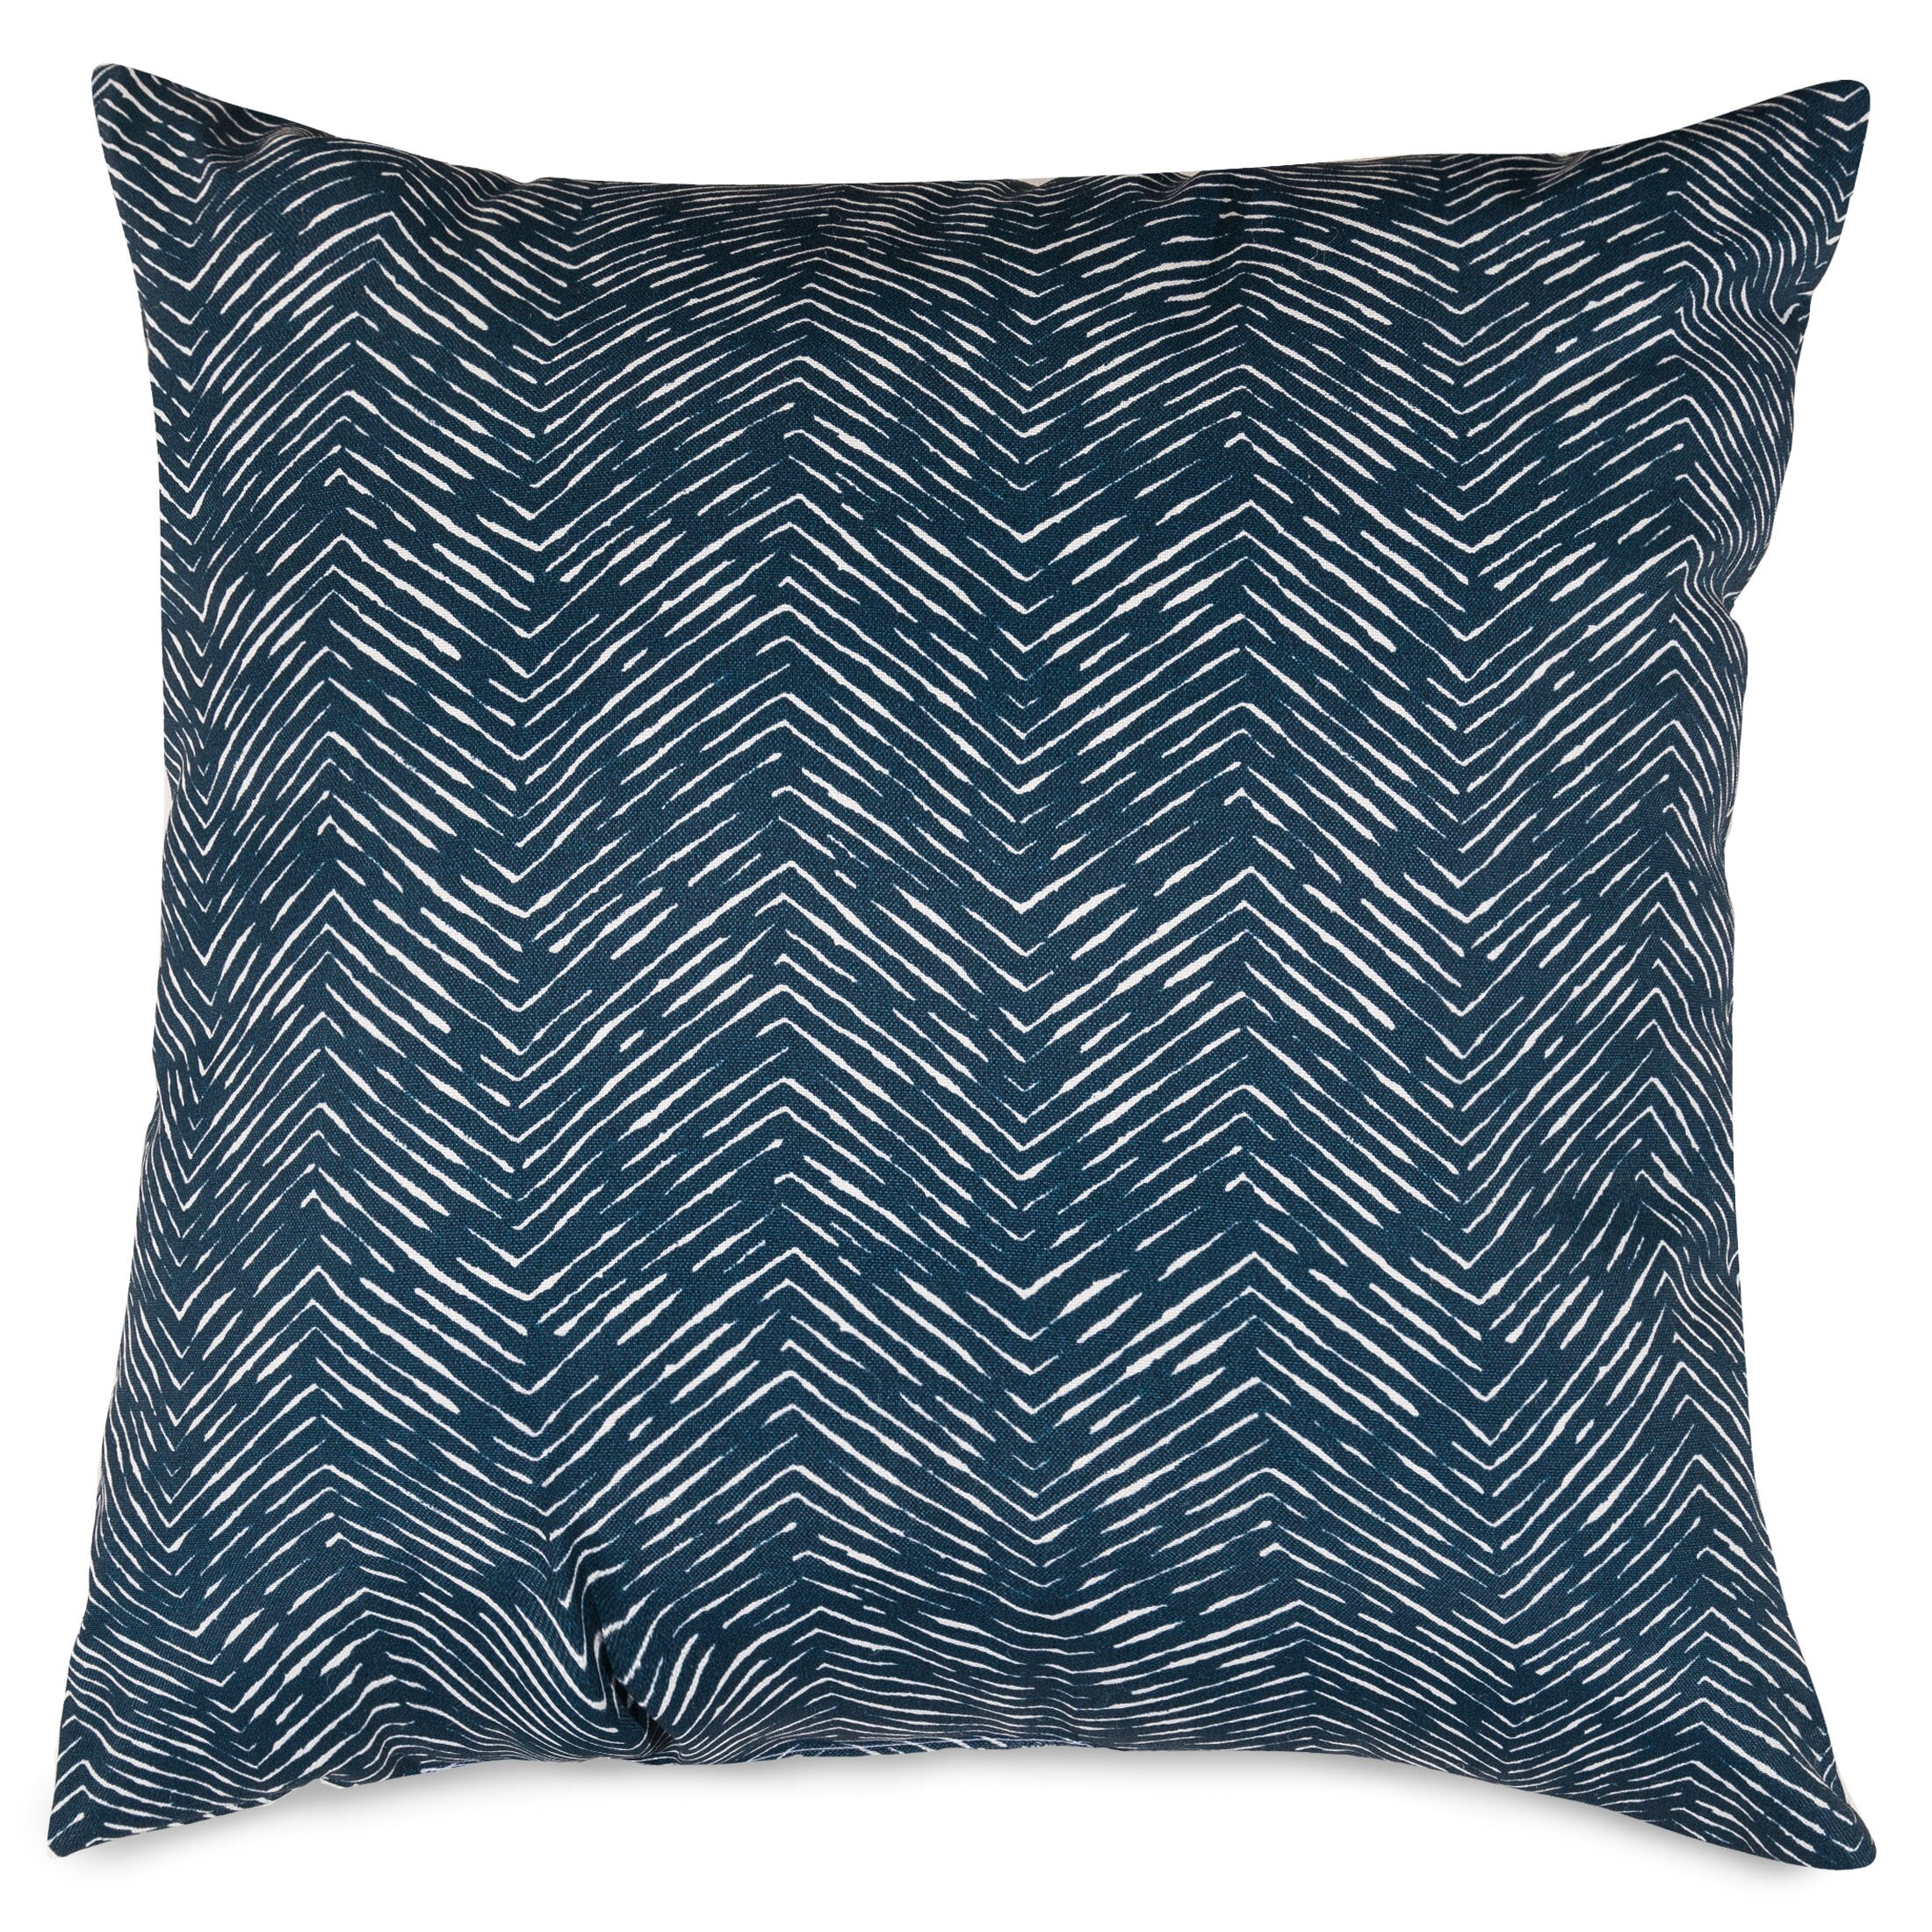 Majestic Home Goods Navajo Indoor Outdoor Throw Pillow